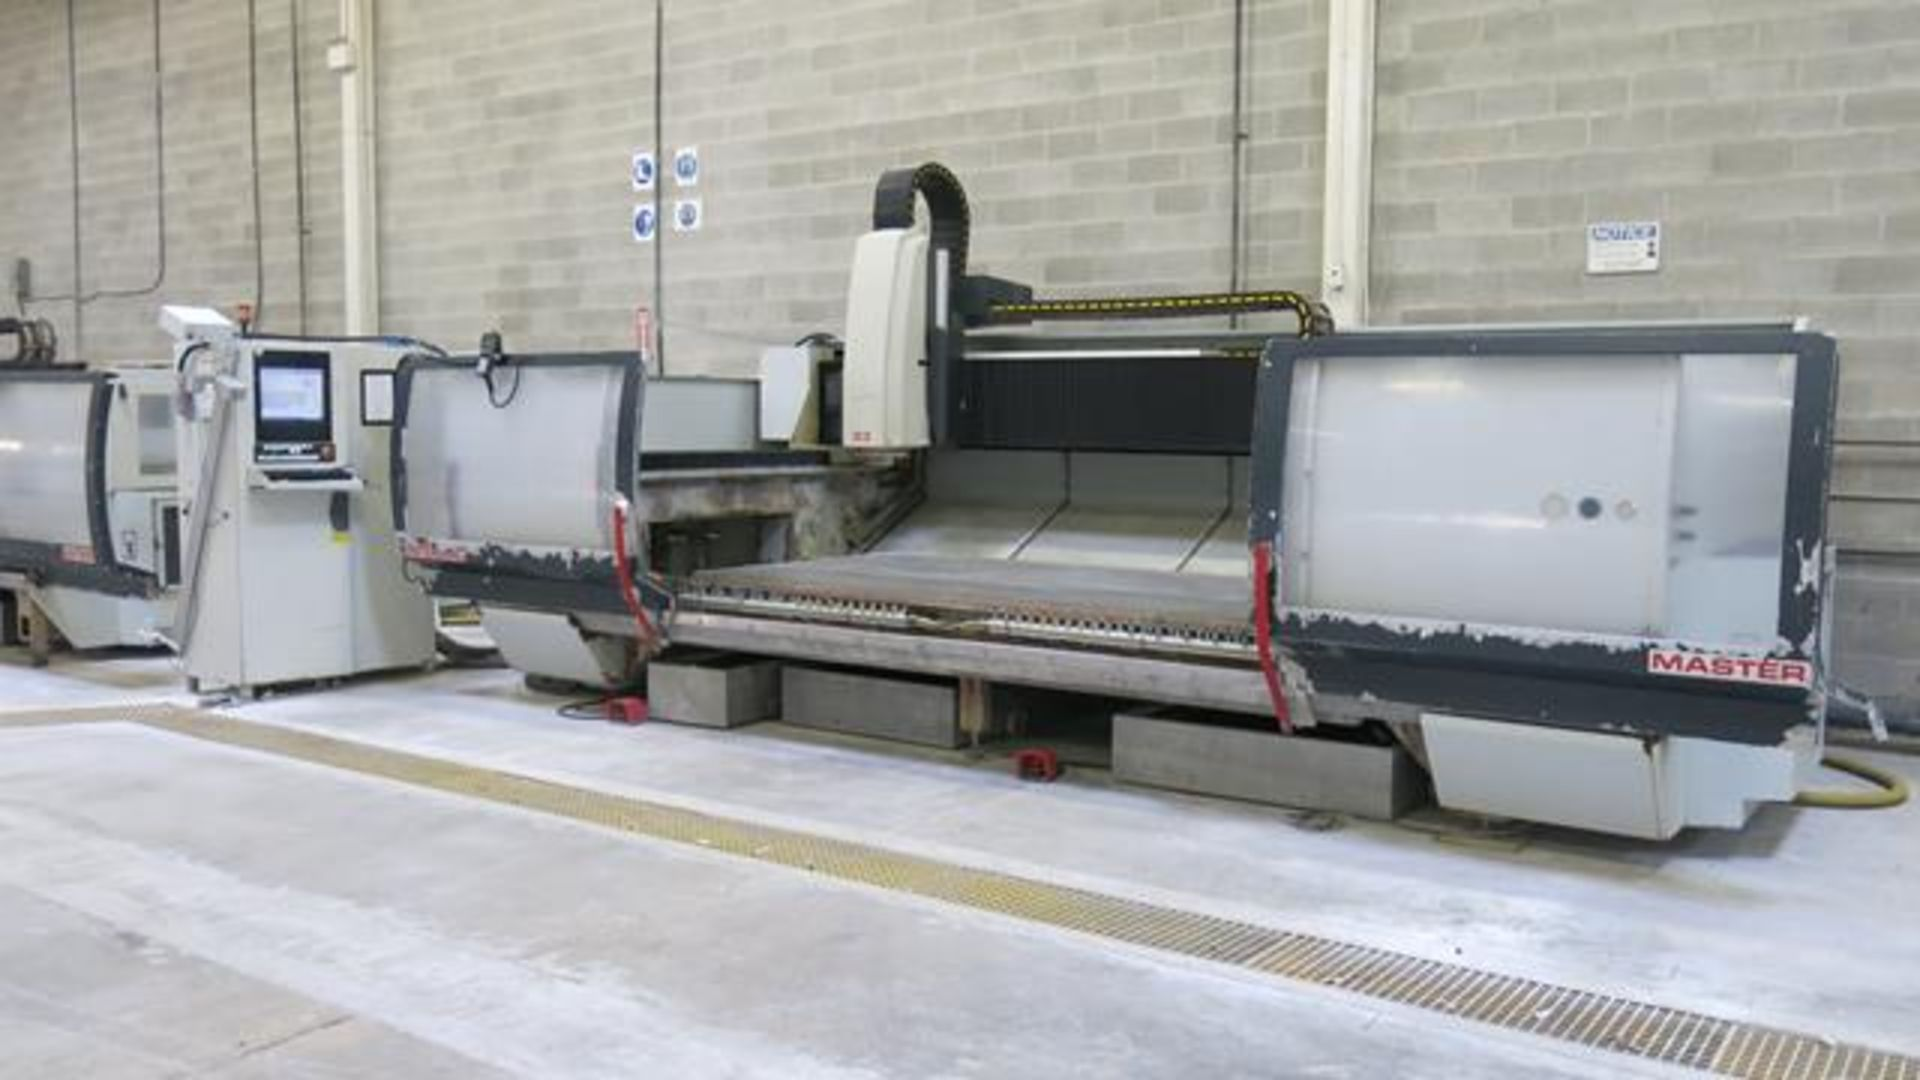 Lot 906 - INTERMAC, MASTER 33 M, CNC STONE AND GLASS MACHINING CENTRE, 12,000 HOURS (APPROX.), S/N 12477, 2007